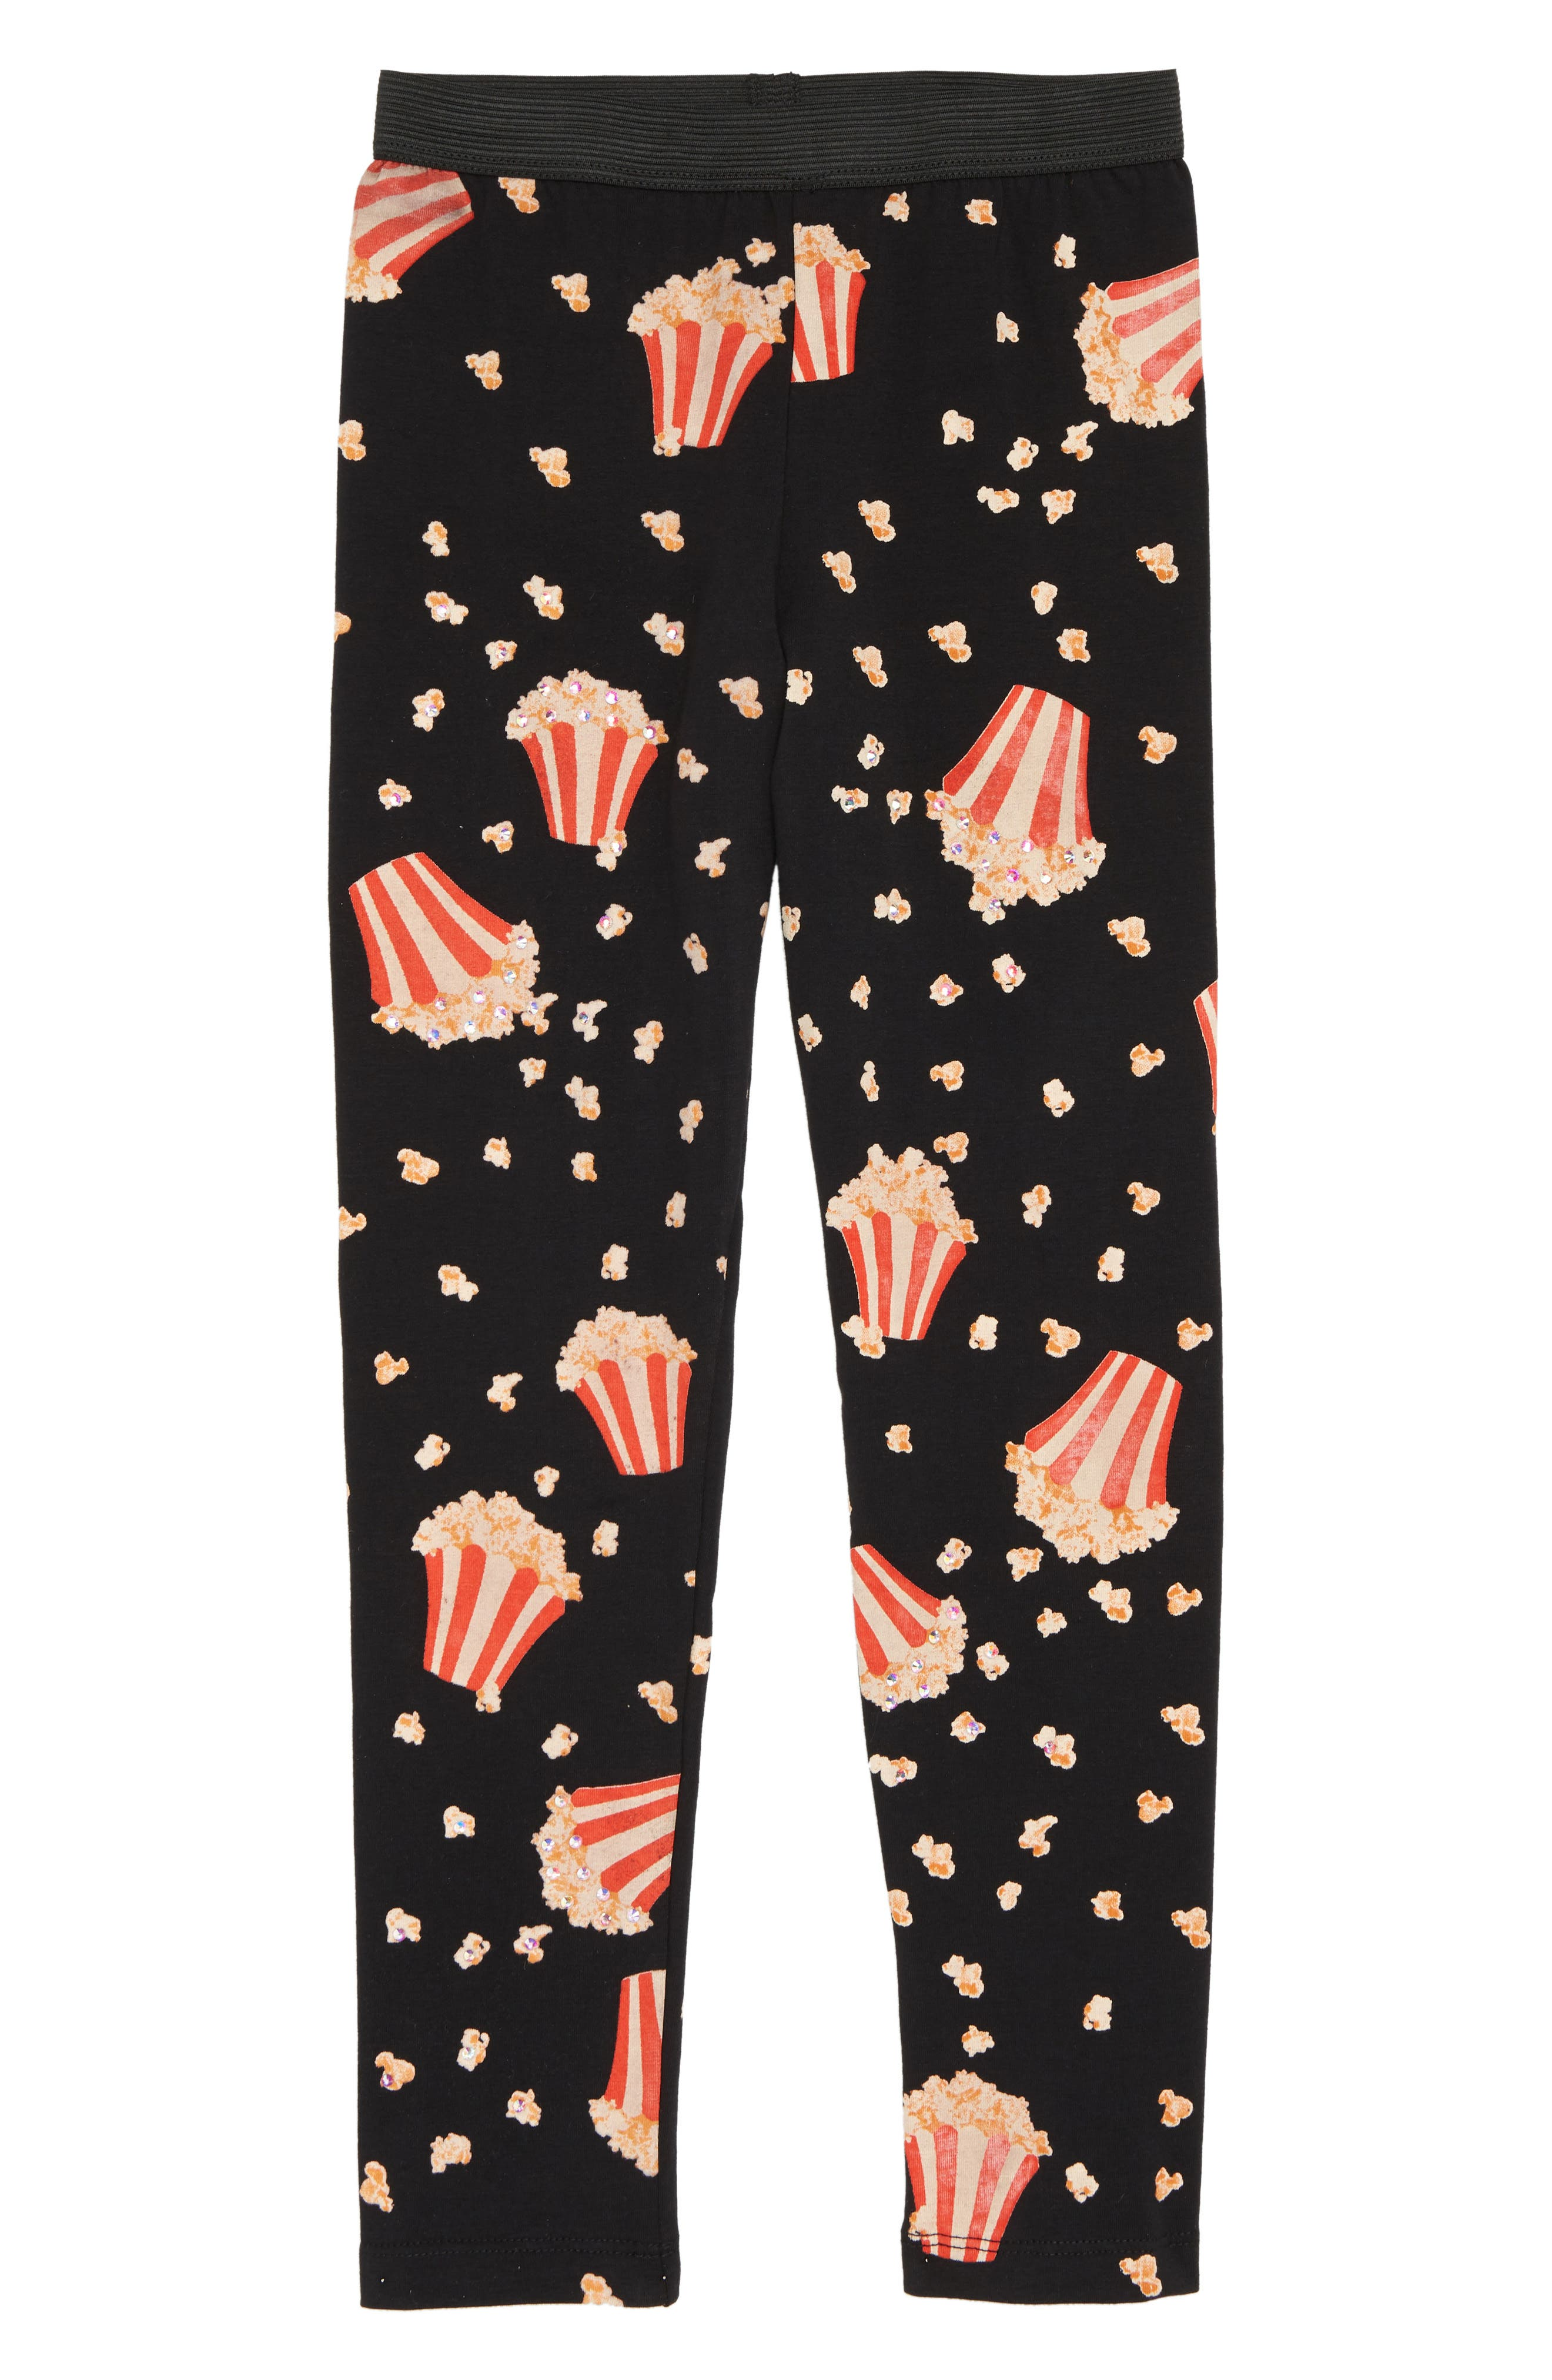 Popcorn Print Leggings,                             Main thumbnail 1, color,                             001